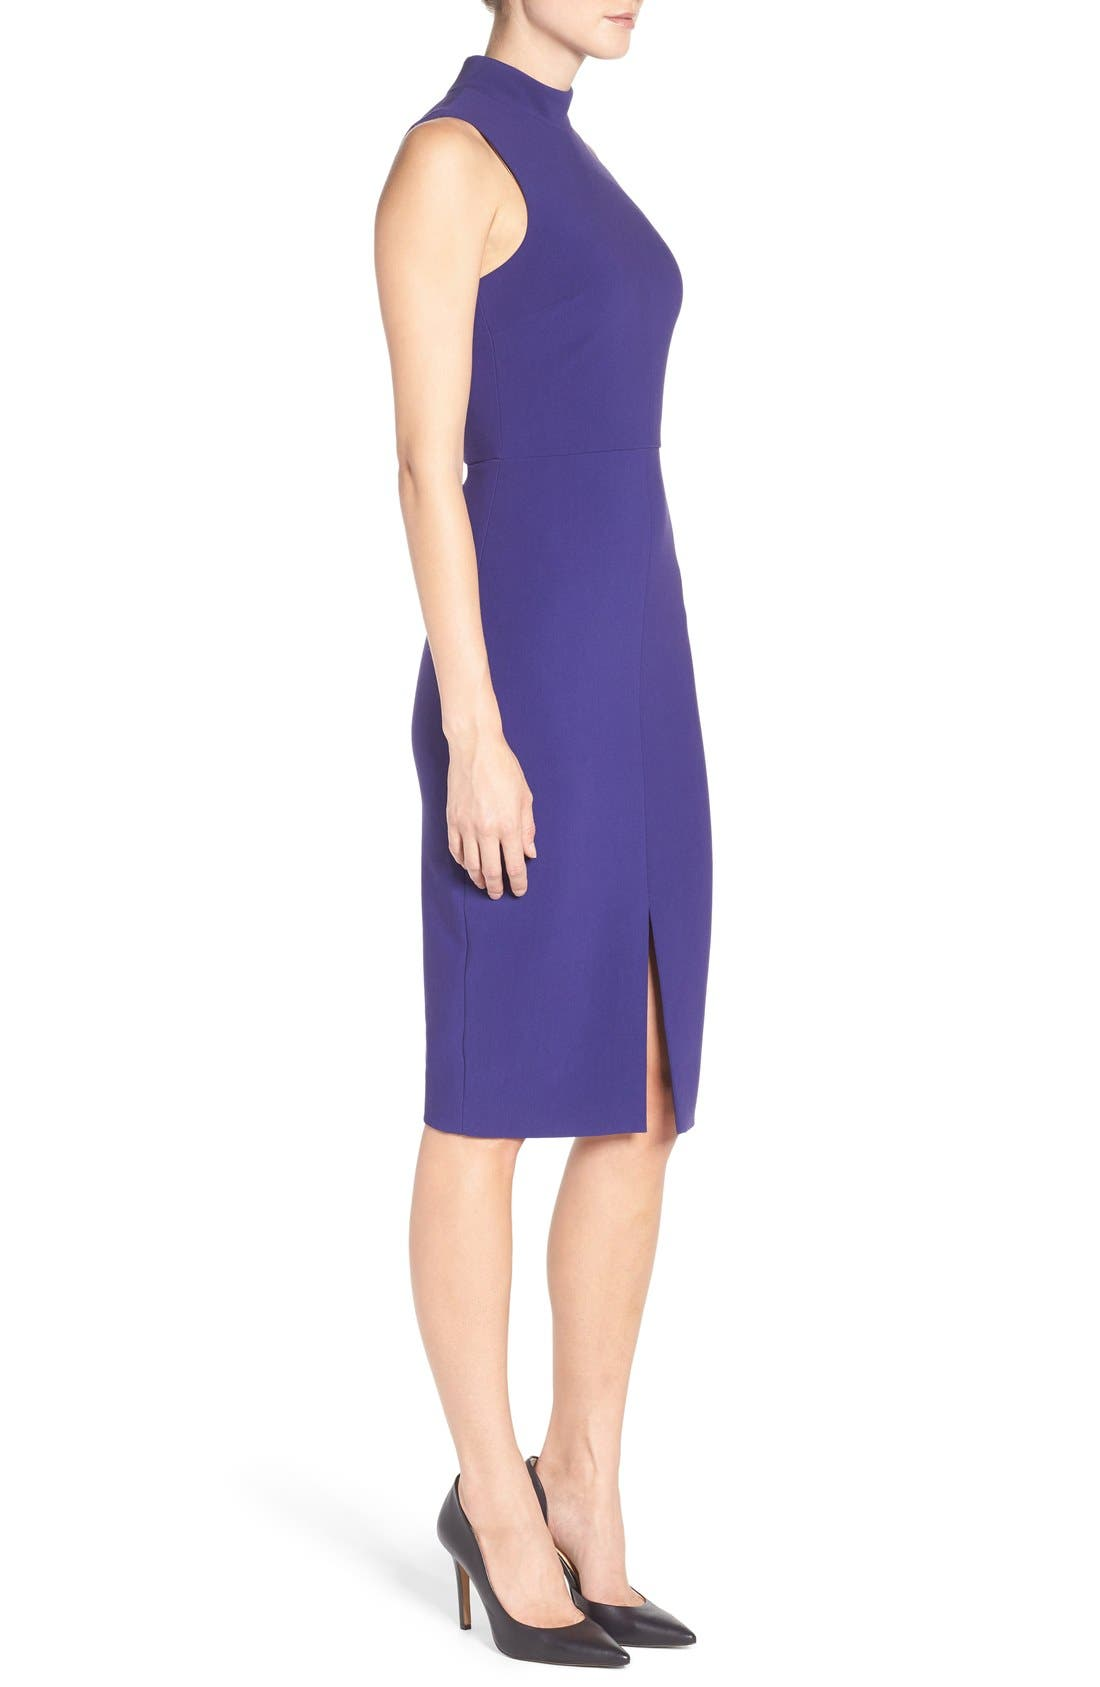 'Caldwell' Mock Neck Sheath Dress,                             Alternate thumbnail 3, color,                             533